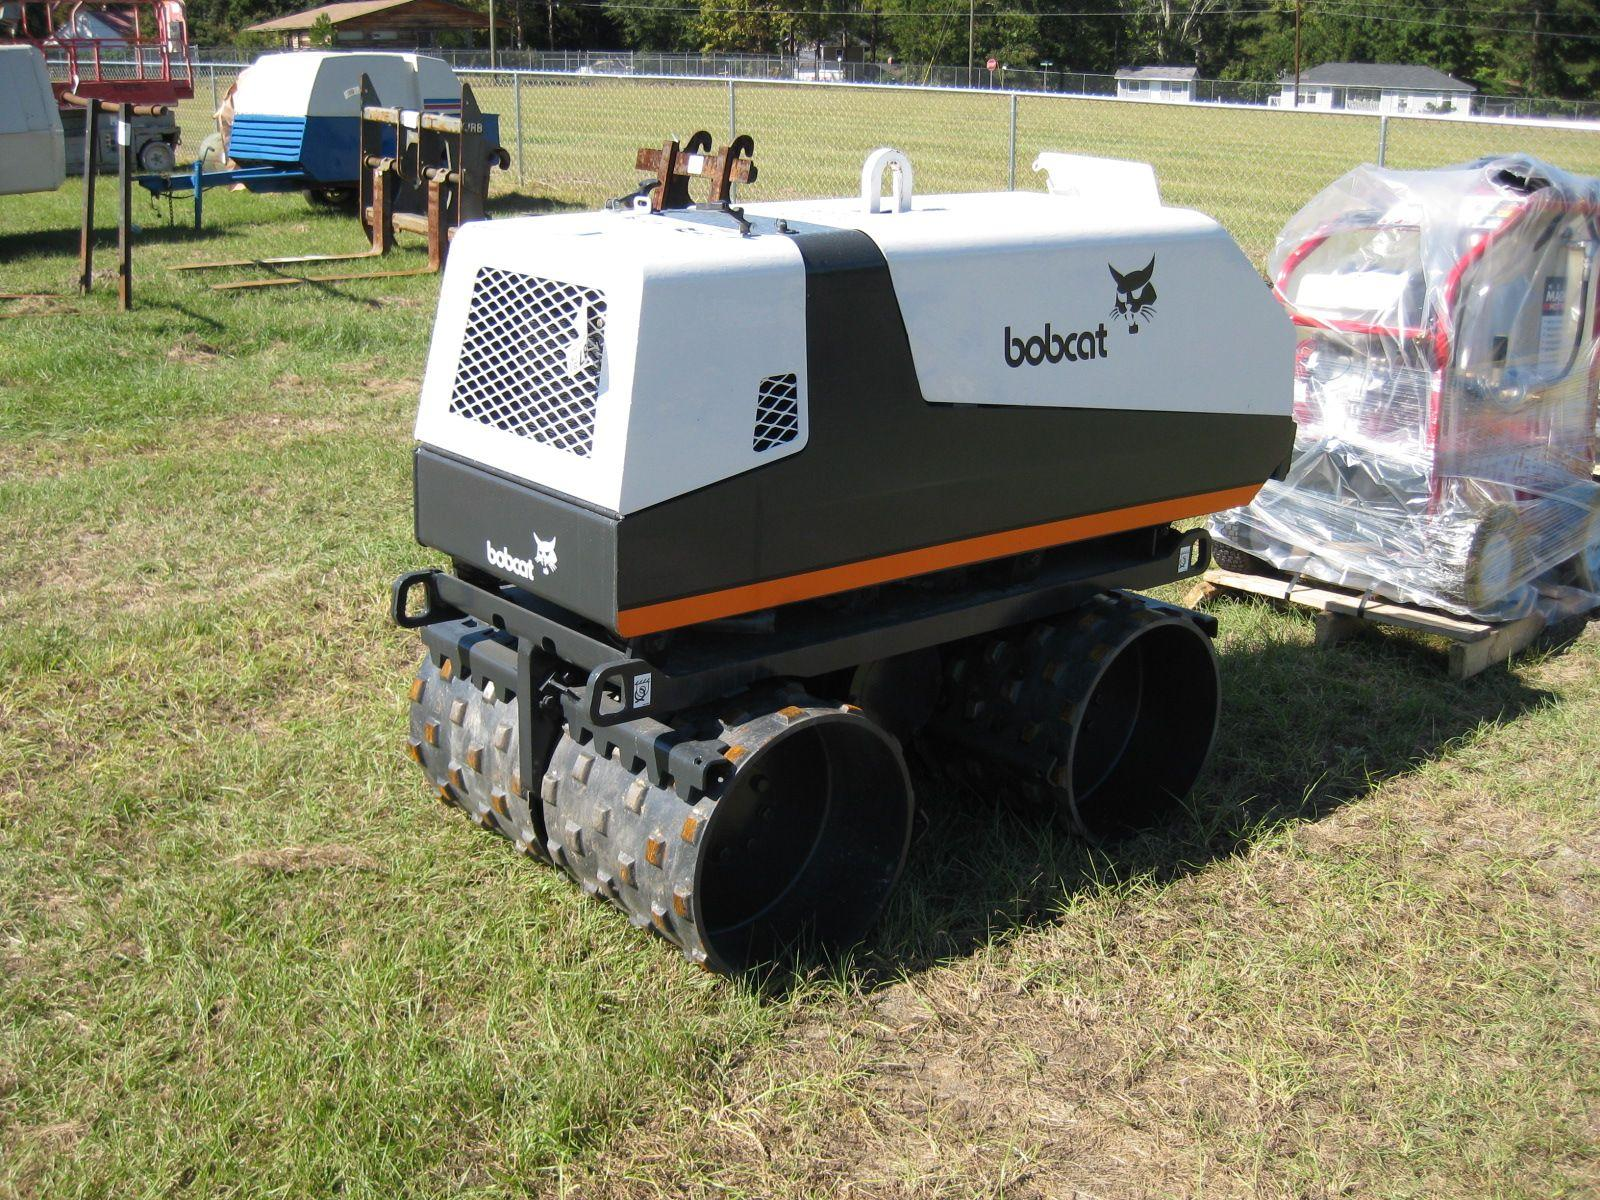 medium resolution of image 1 bobcat ingersoll rand bct 13 trench compactor s n